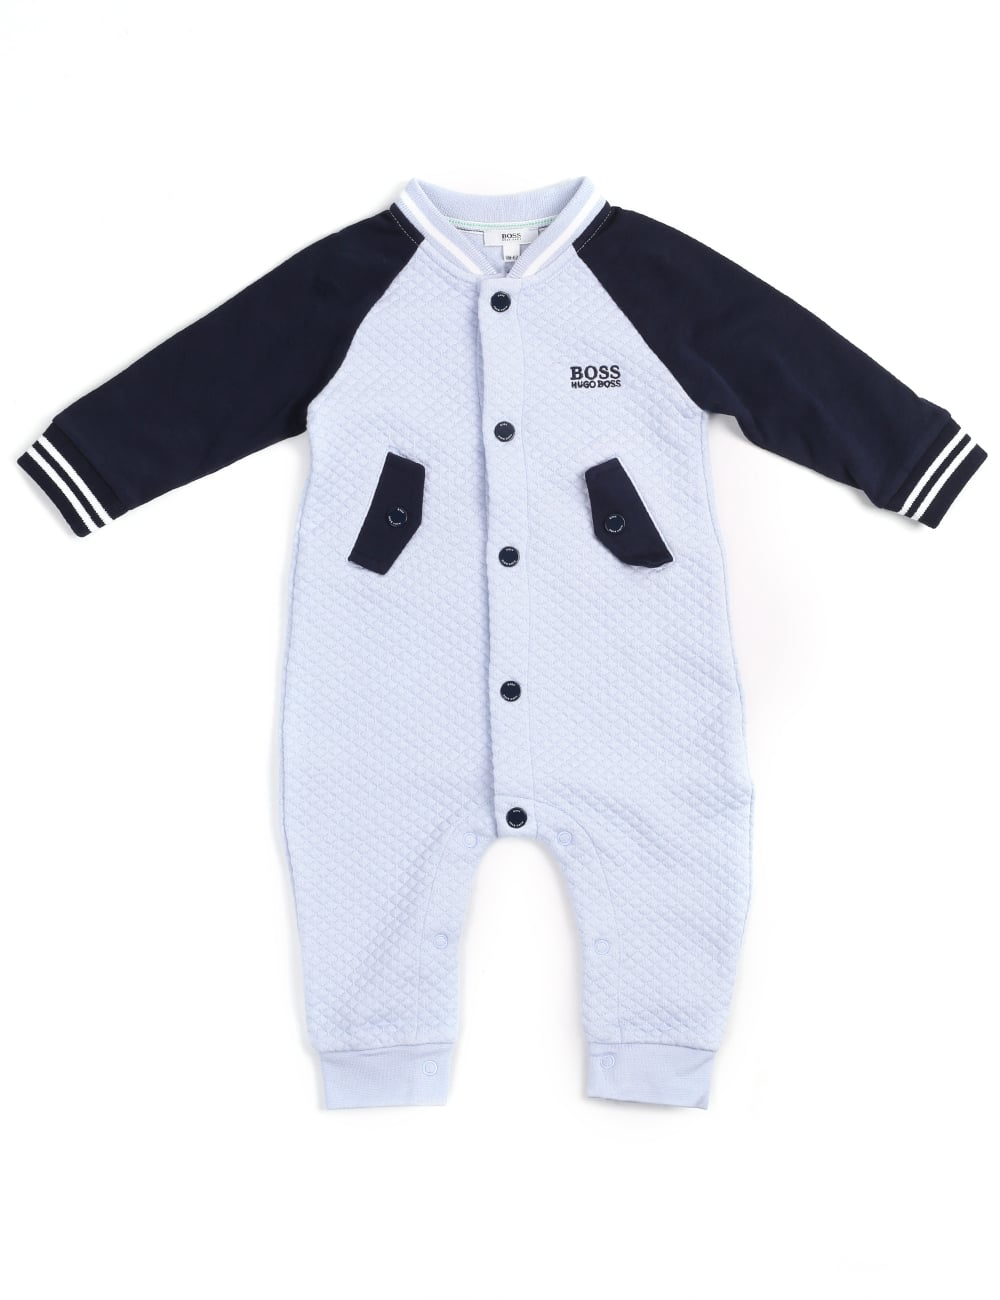 Hugo Boss Baby Boys All In One 3261a177a